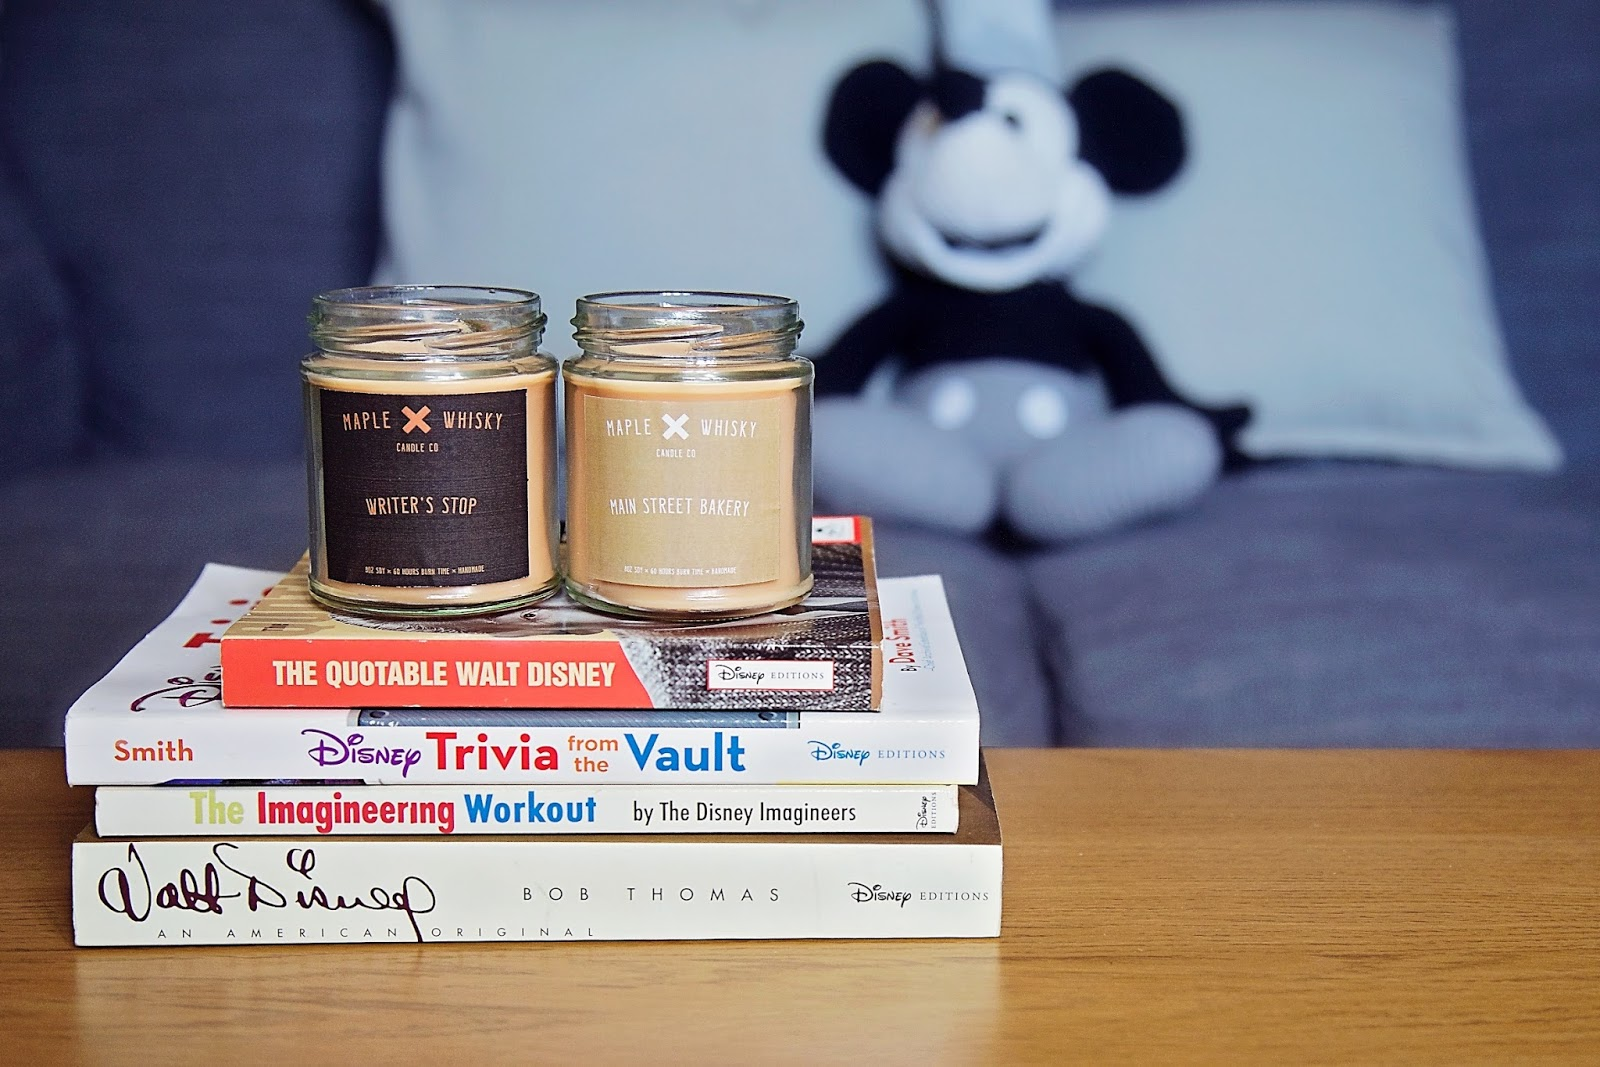 Maple and Whisky Disney themed Candles on top of Disney Books.